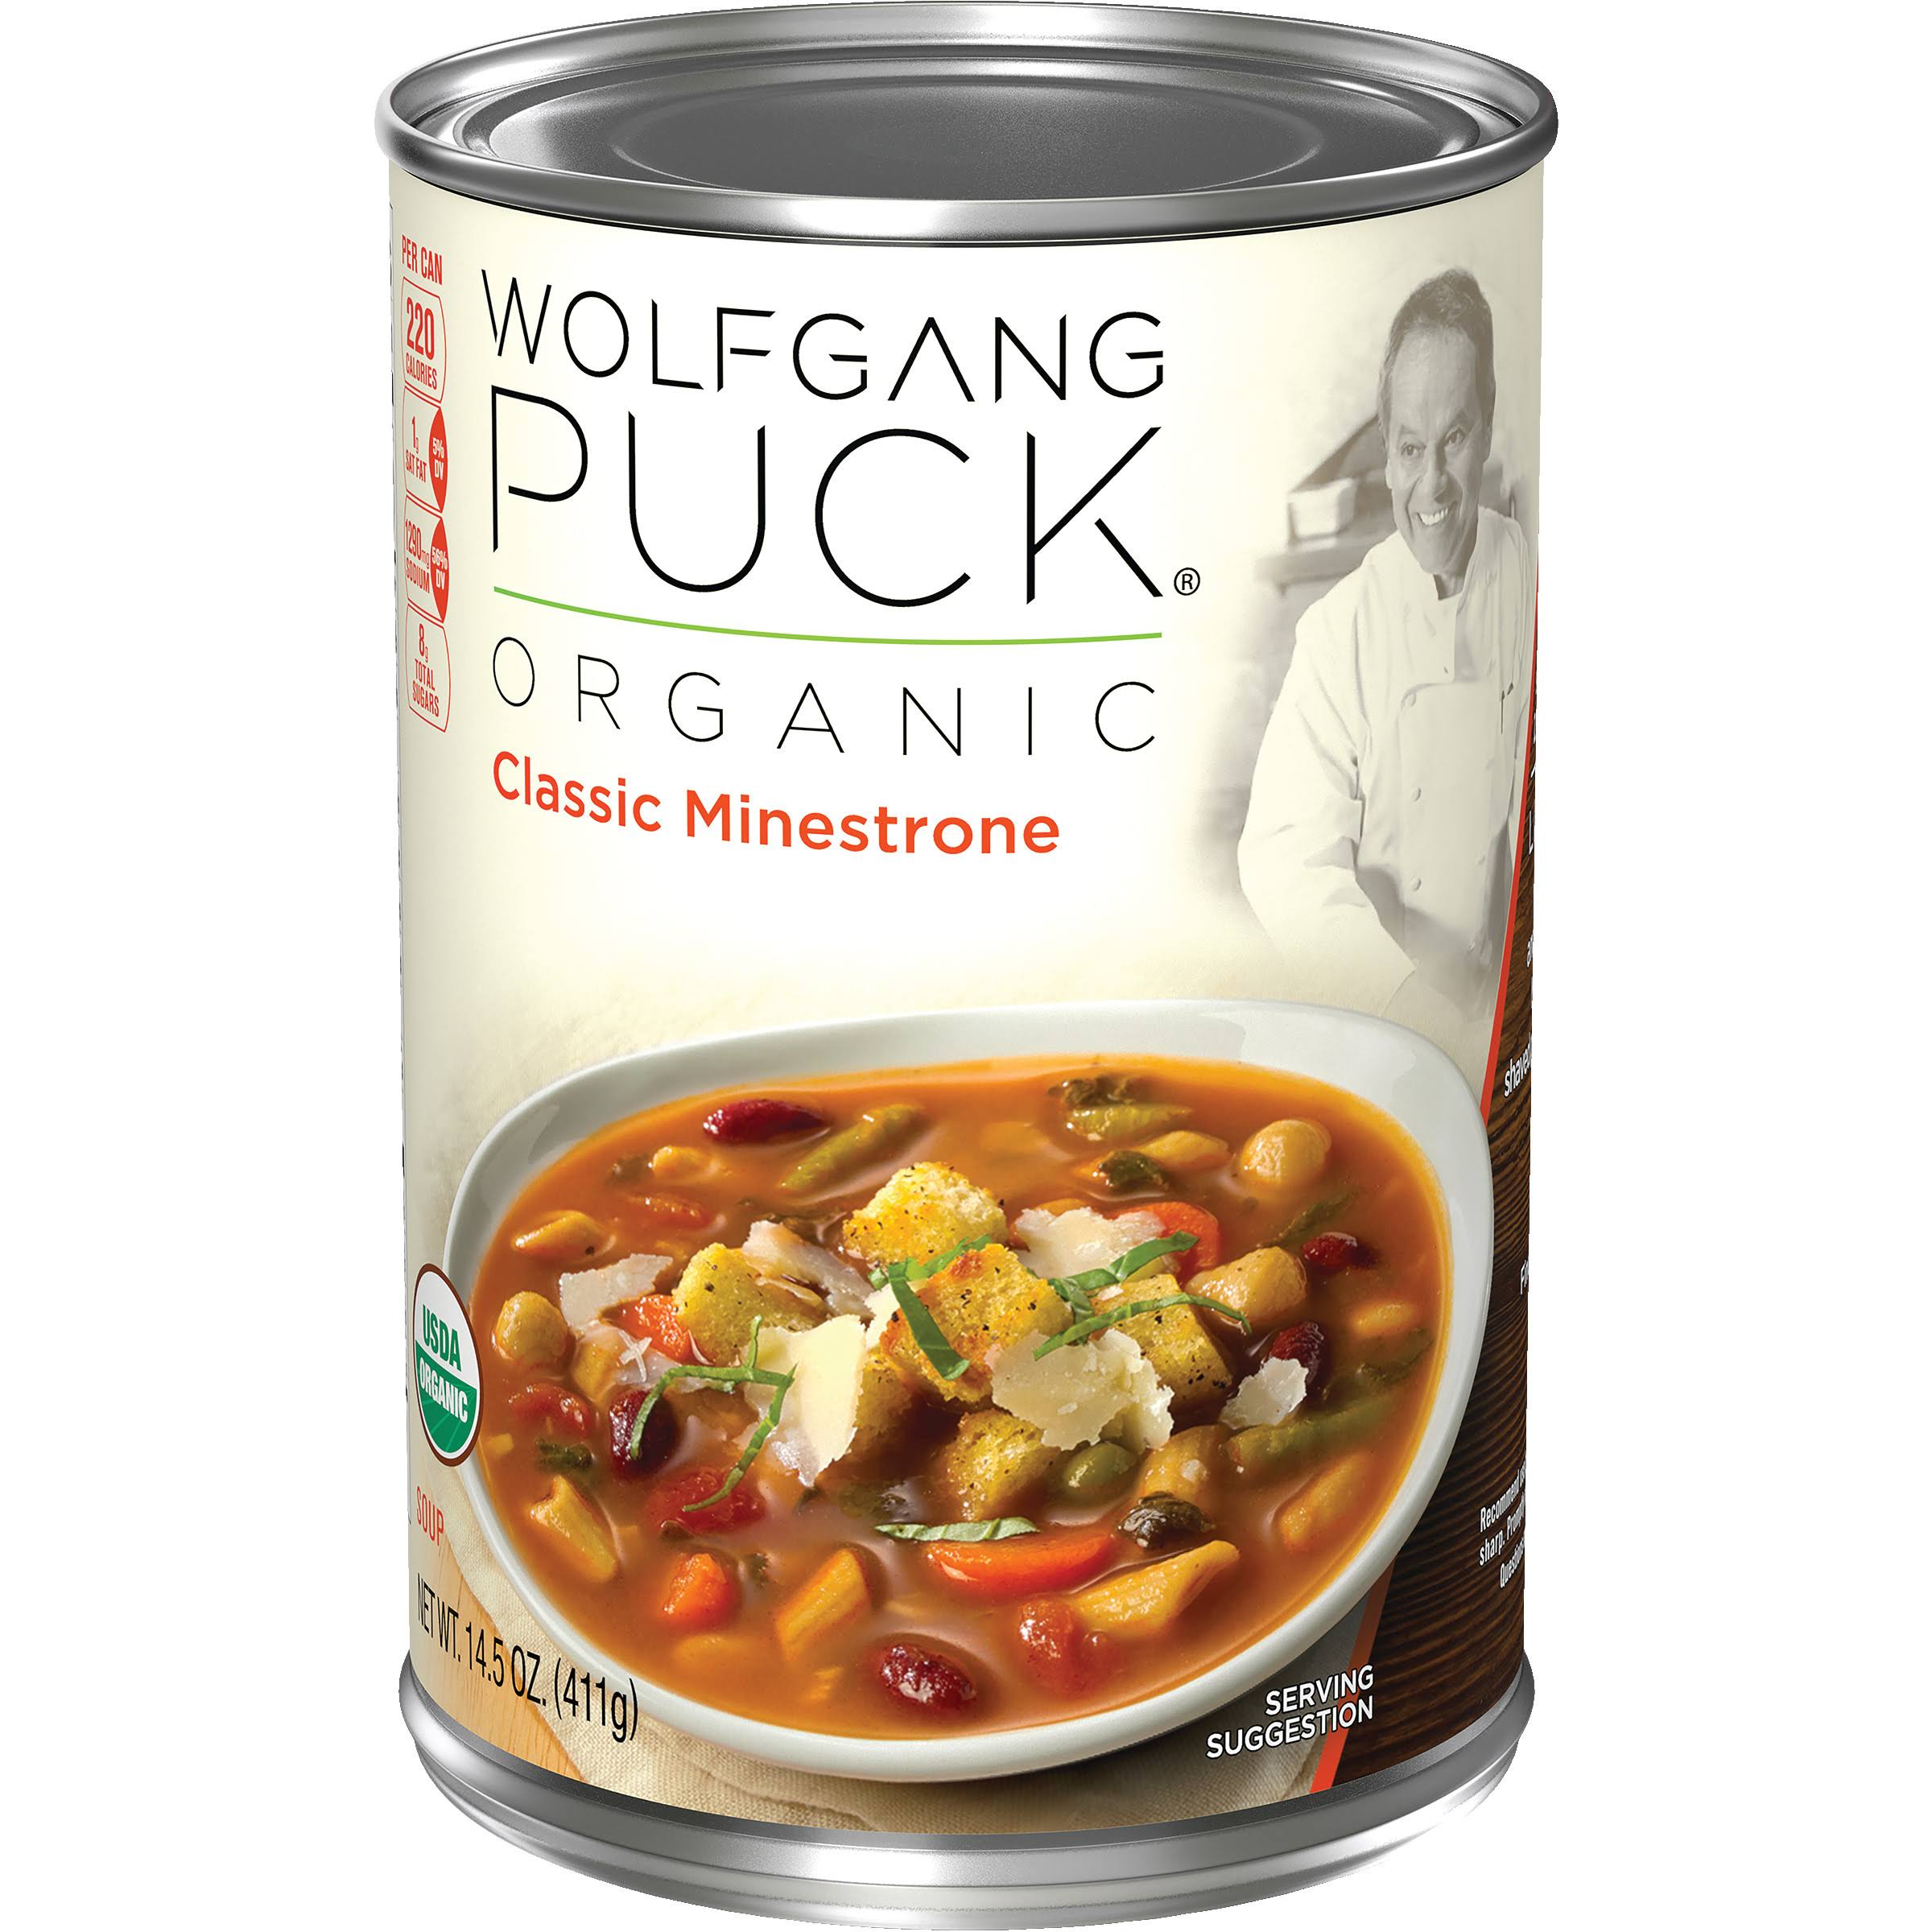 Wolfgang Puck Organic Soup - Classic Minestrone, 14.5oz